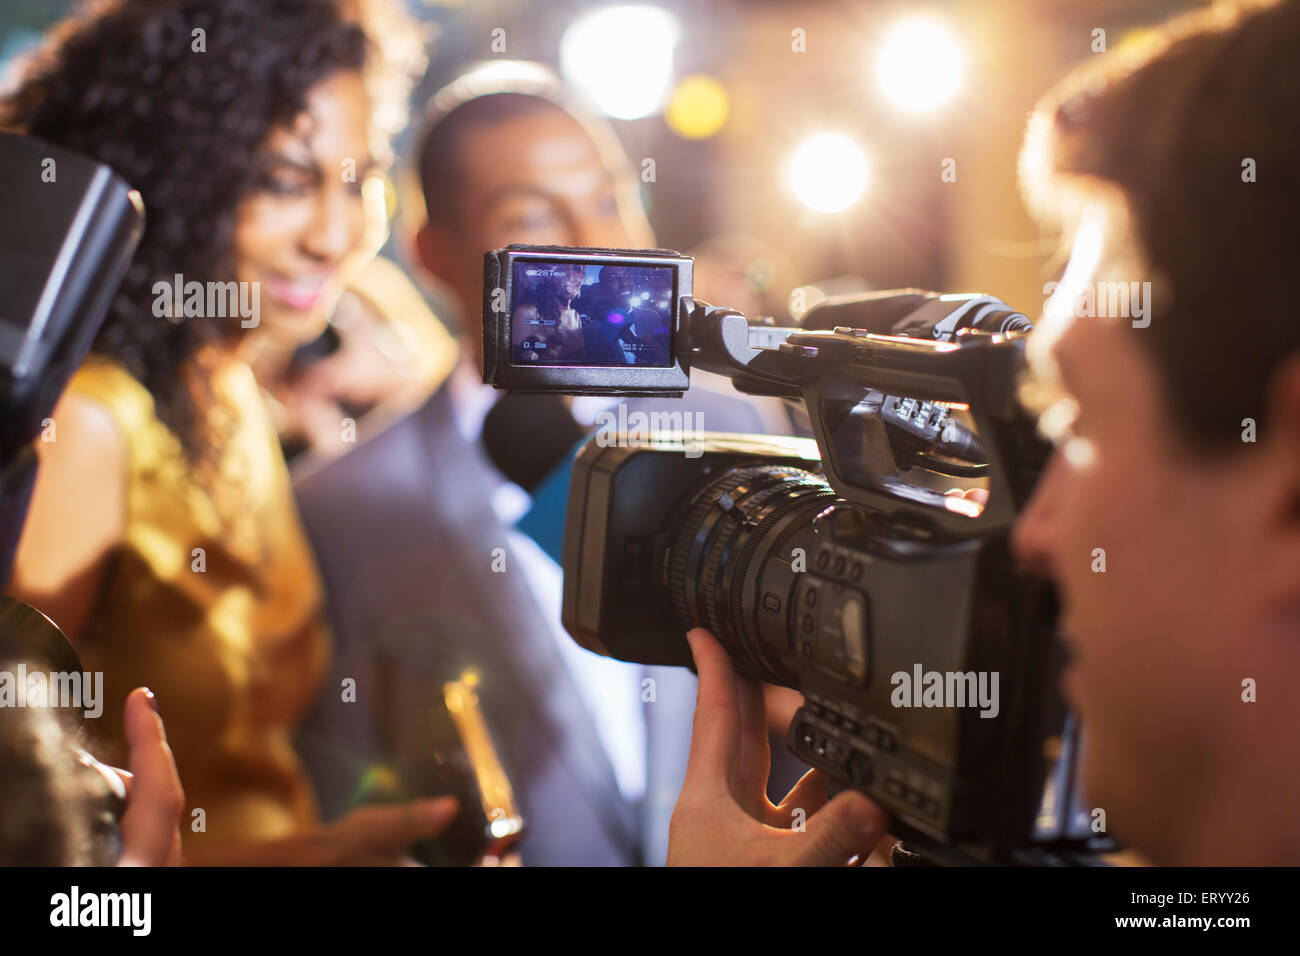 Close up of paparazzi filming celebrity couple at event - Stock Image